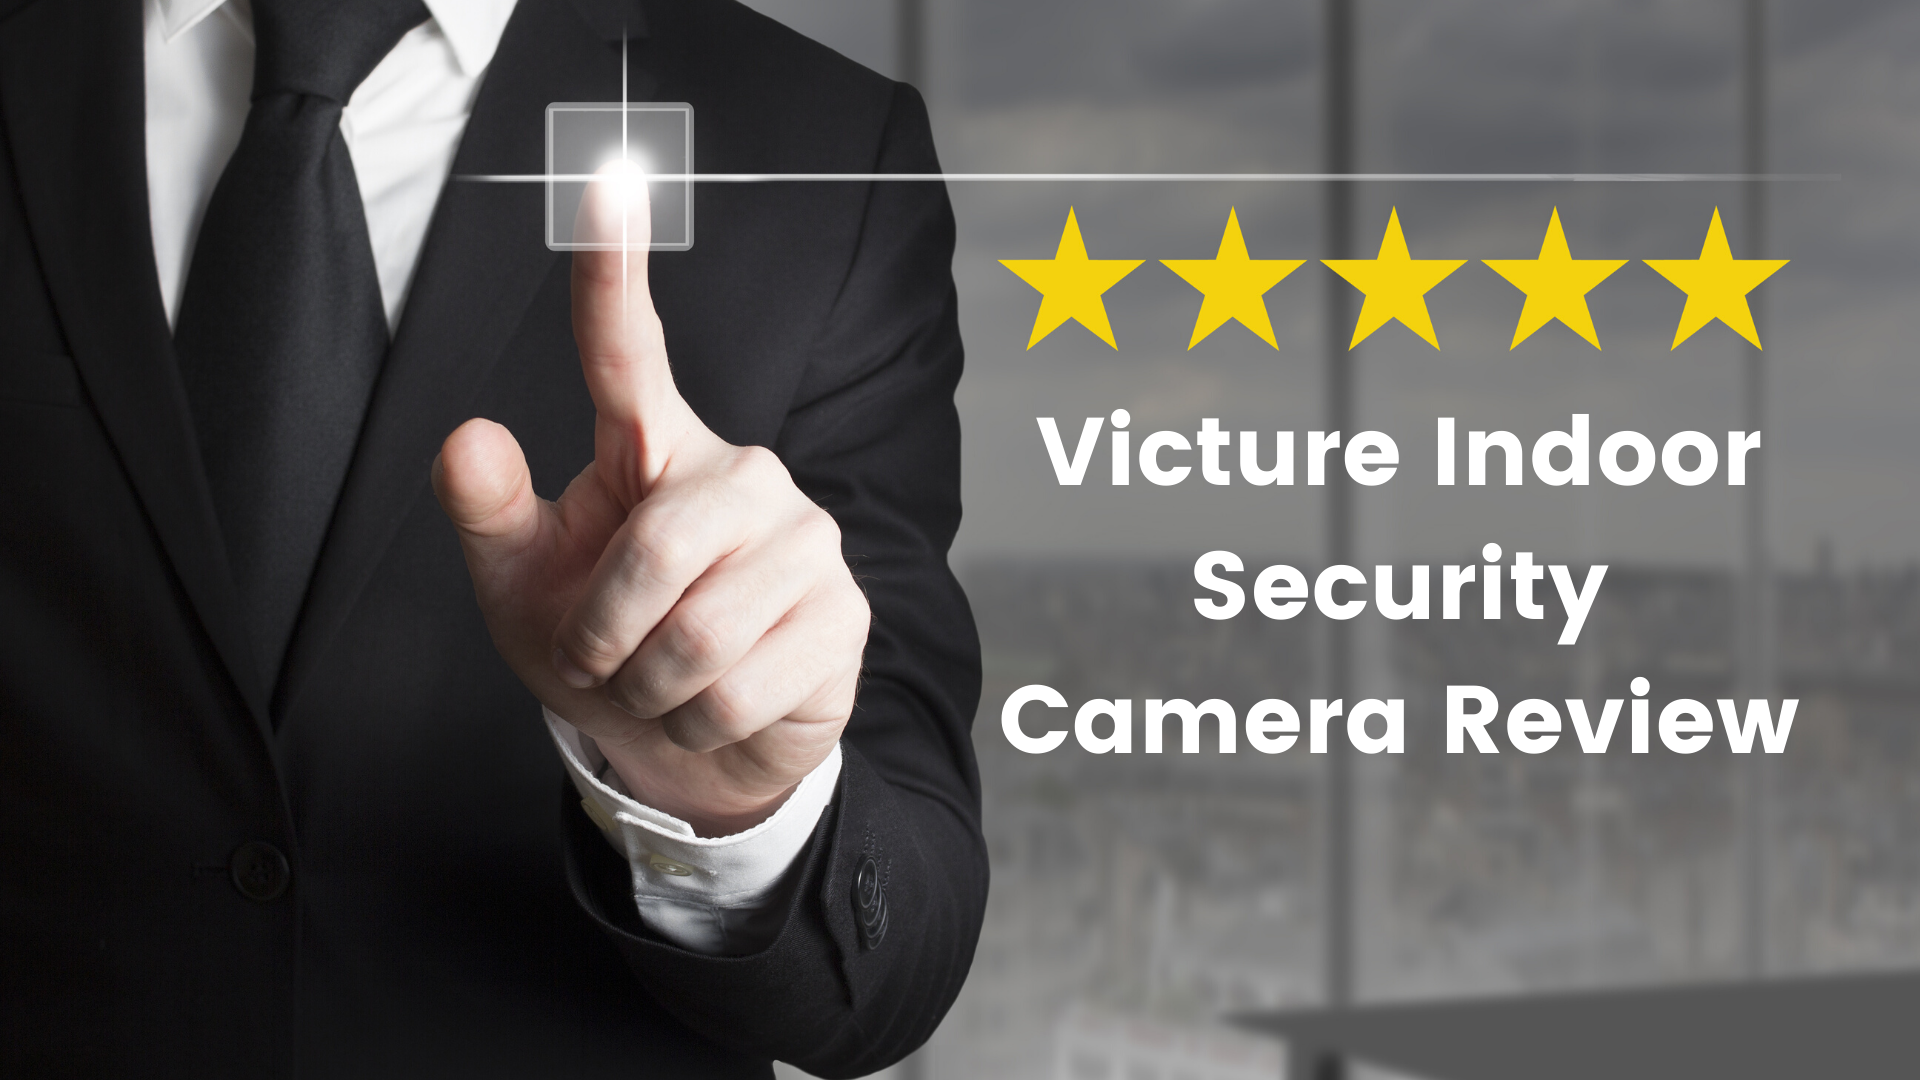 Victure Indoor Security Camera Review